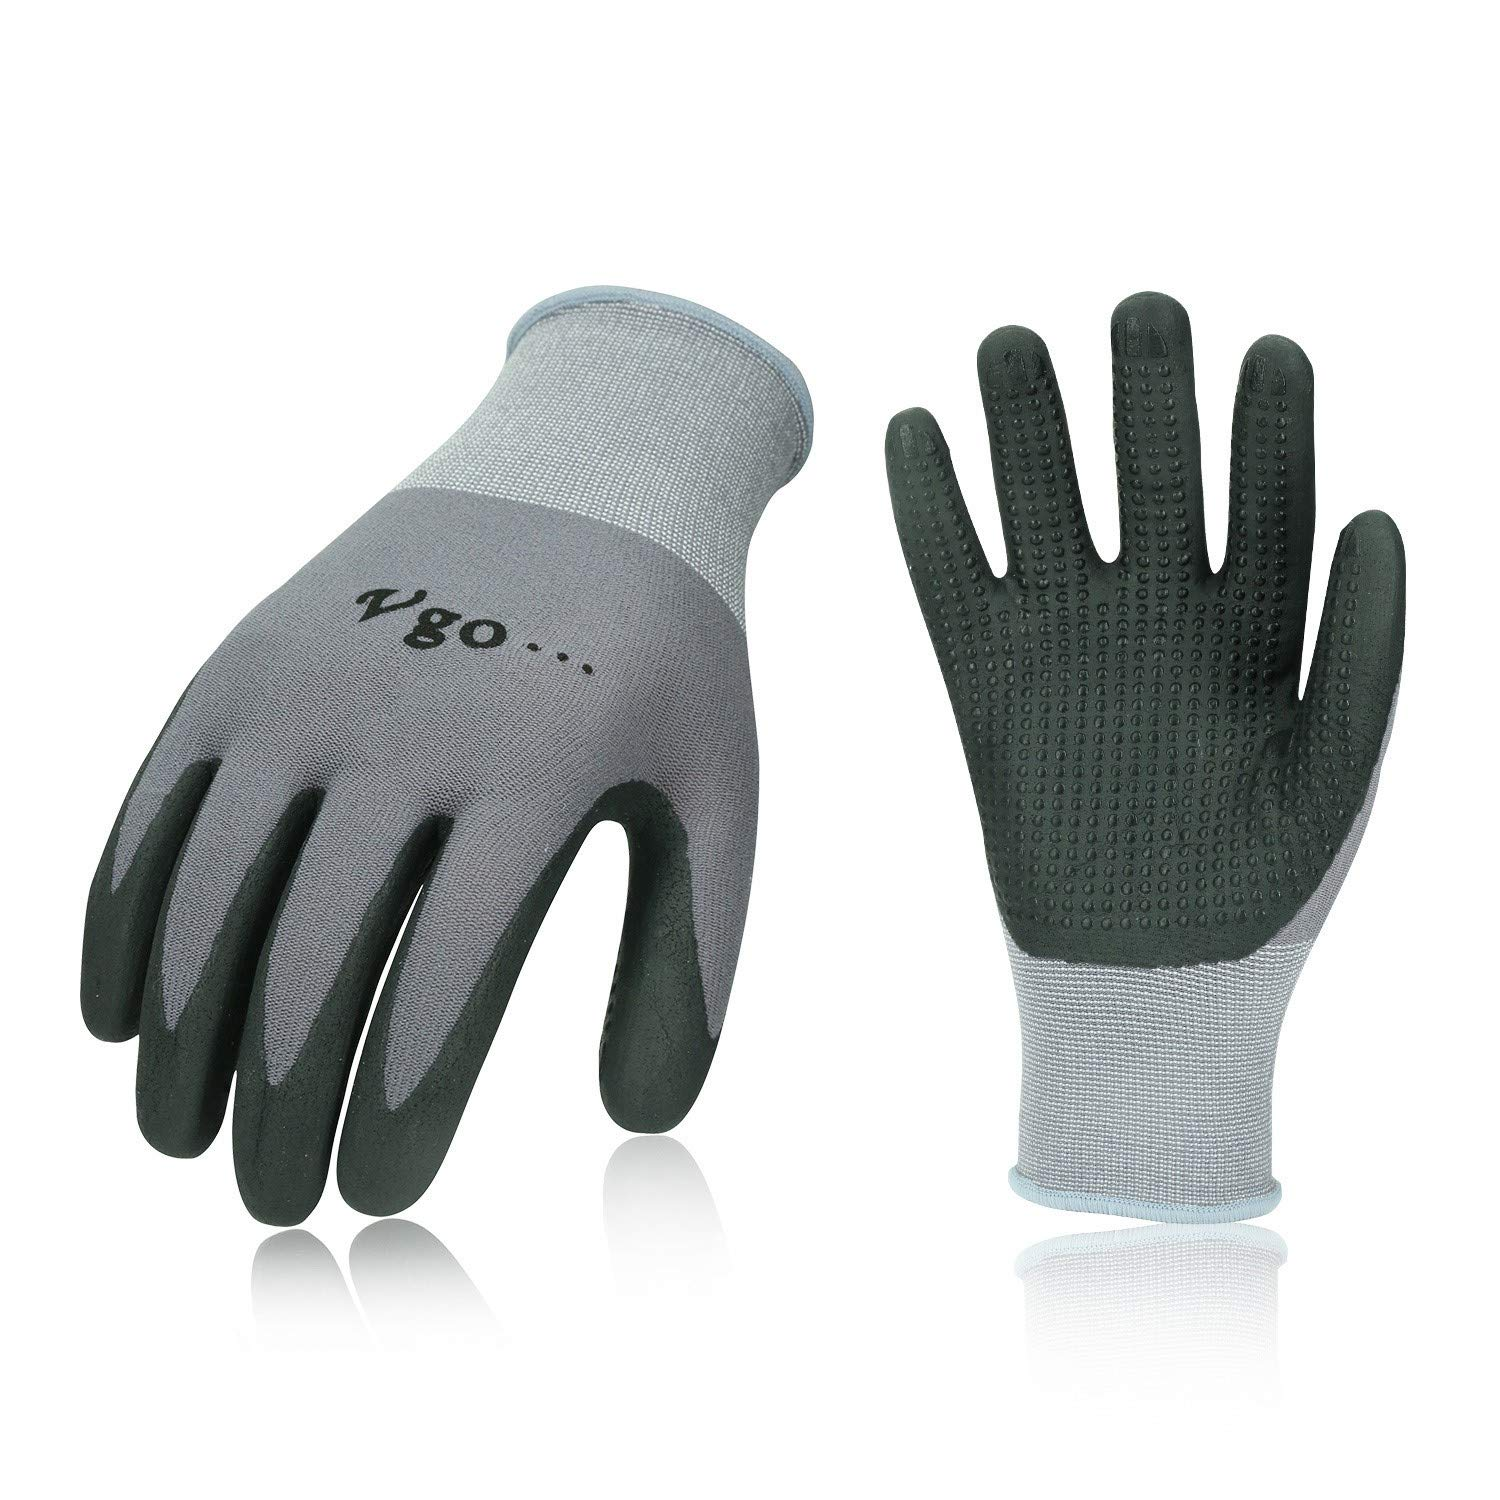 Vgo 3 Pairs Super Light Micro Foam Nitrile Coating Gardening and Work Gloves(Size XL, Grey, NT5148) Laborsing Safety Products Inc.